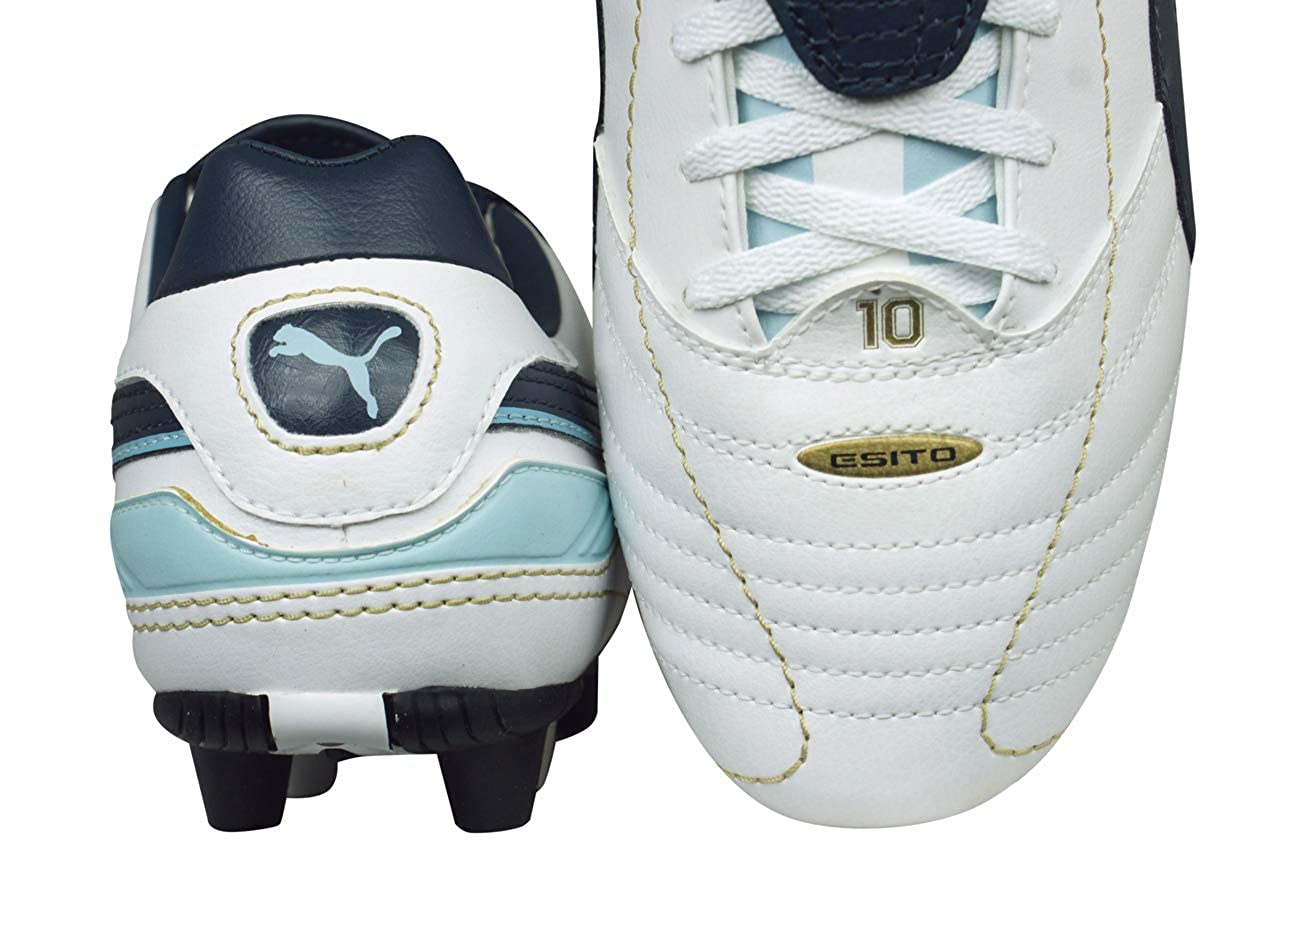 huge discount de810 2cba8 Puma Esito Diego Finale HG Mens Football Boots Maradonna Argentina   Amazon.co.uk  Shoes   Bags